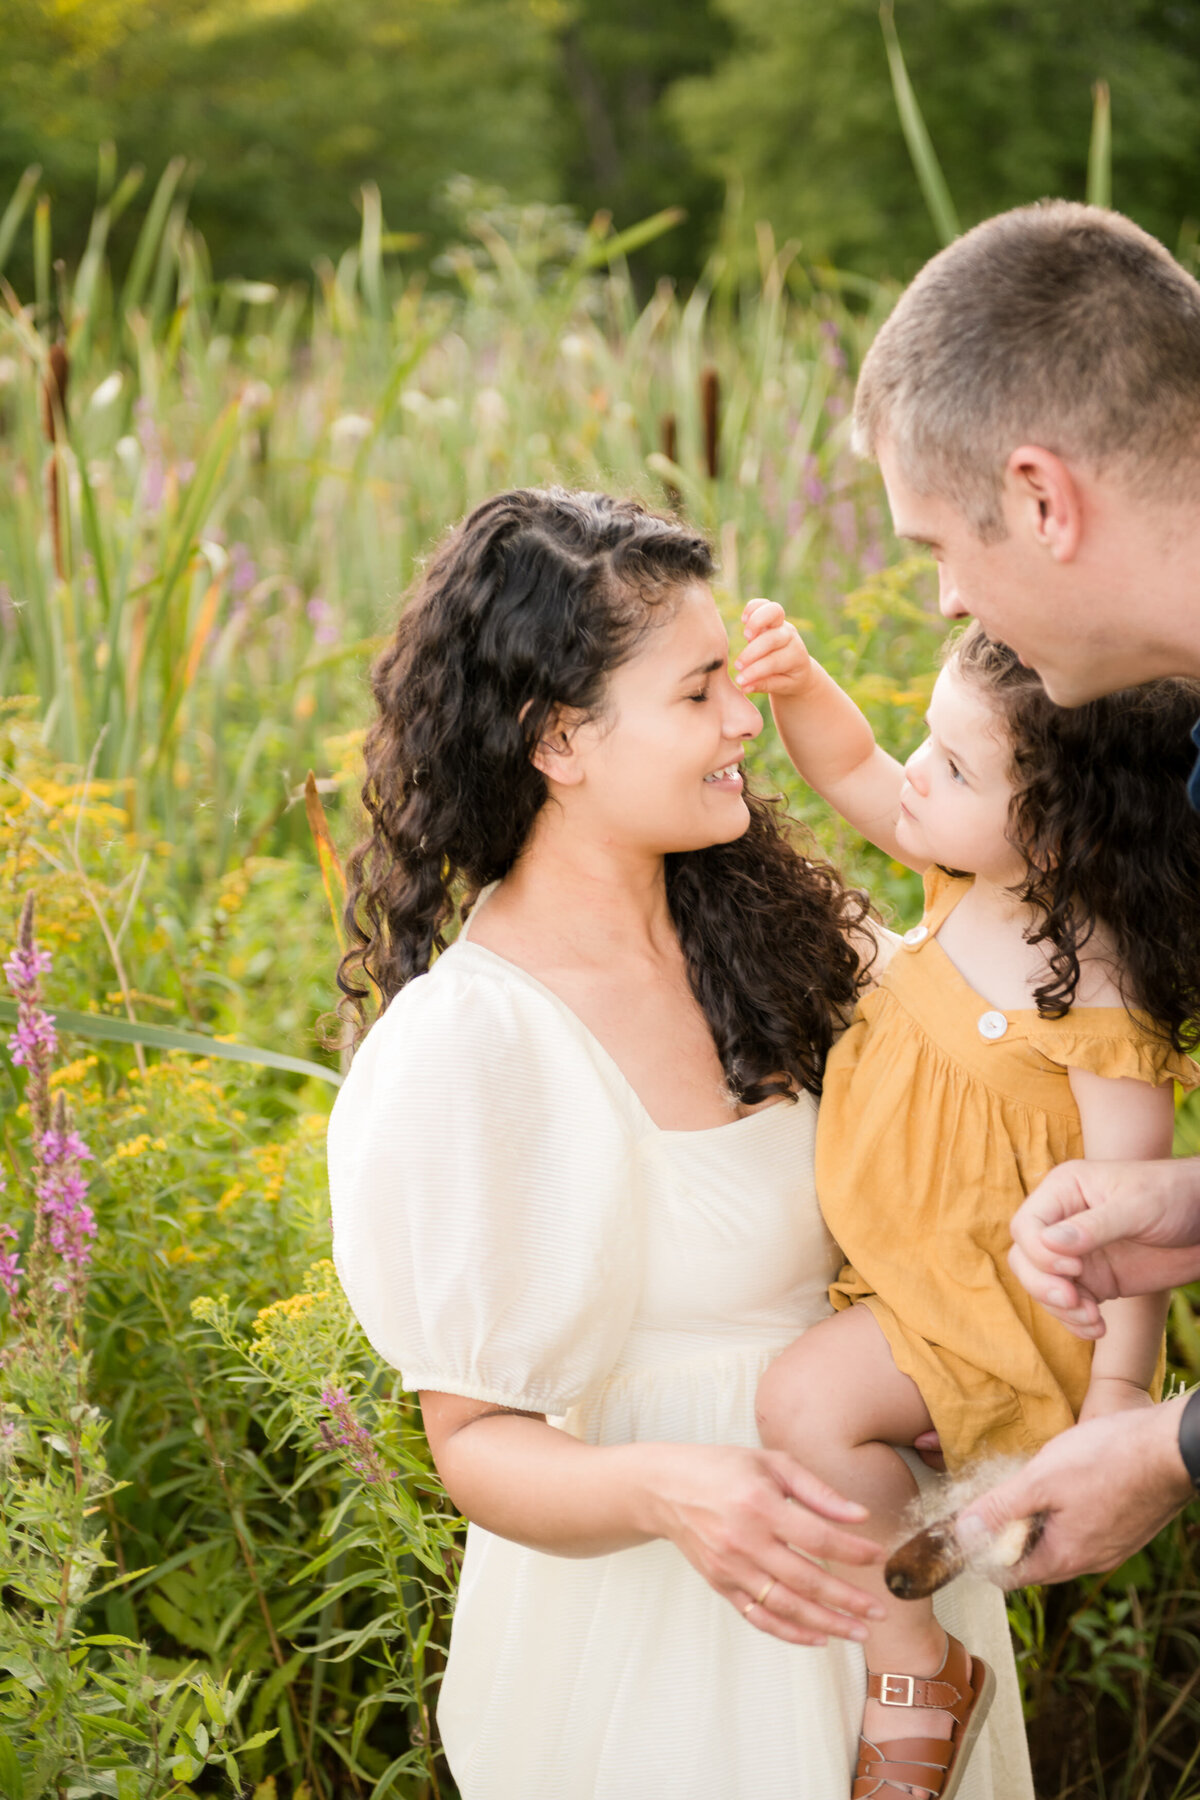 Boston-family-photographer-bella-wang-photography-Lifestyle-session-outdoor-wildflower-49